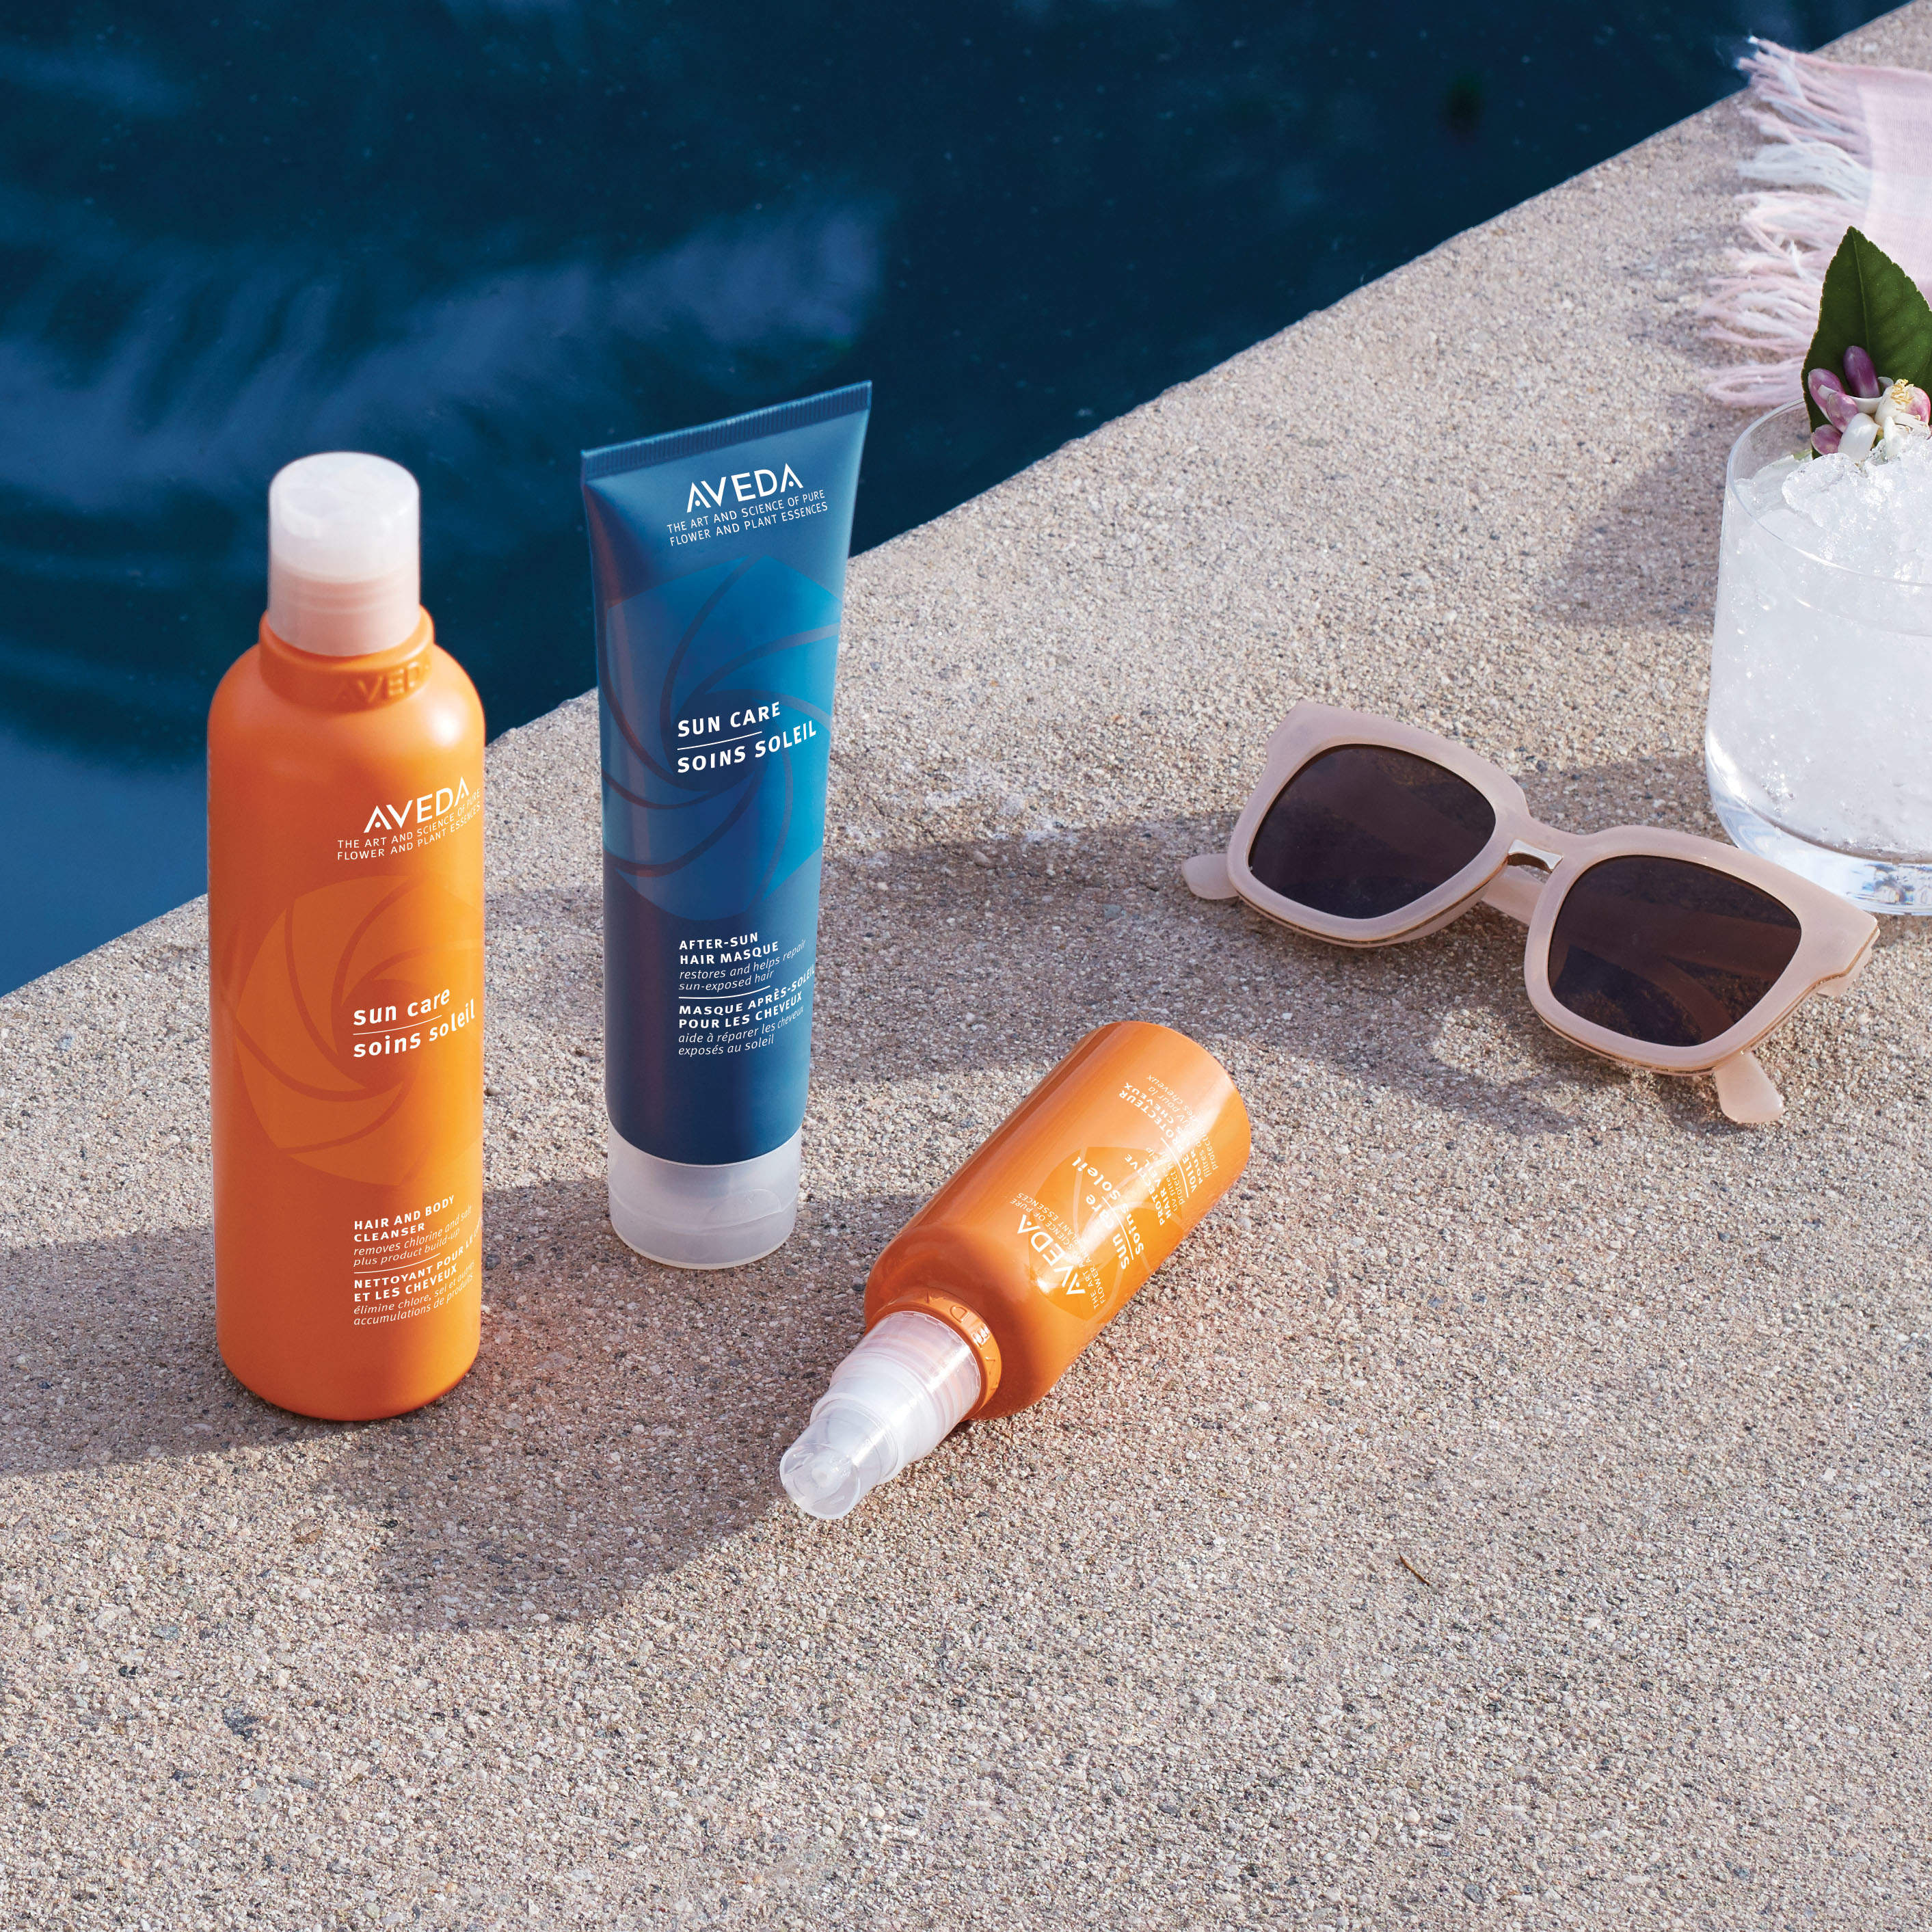 Sun Care hair & body cleanser